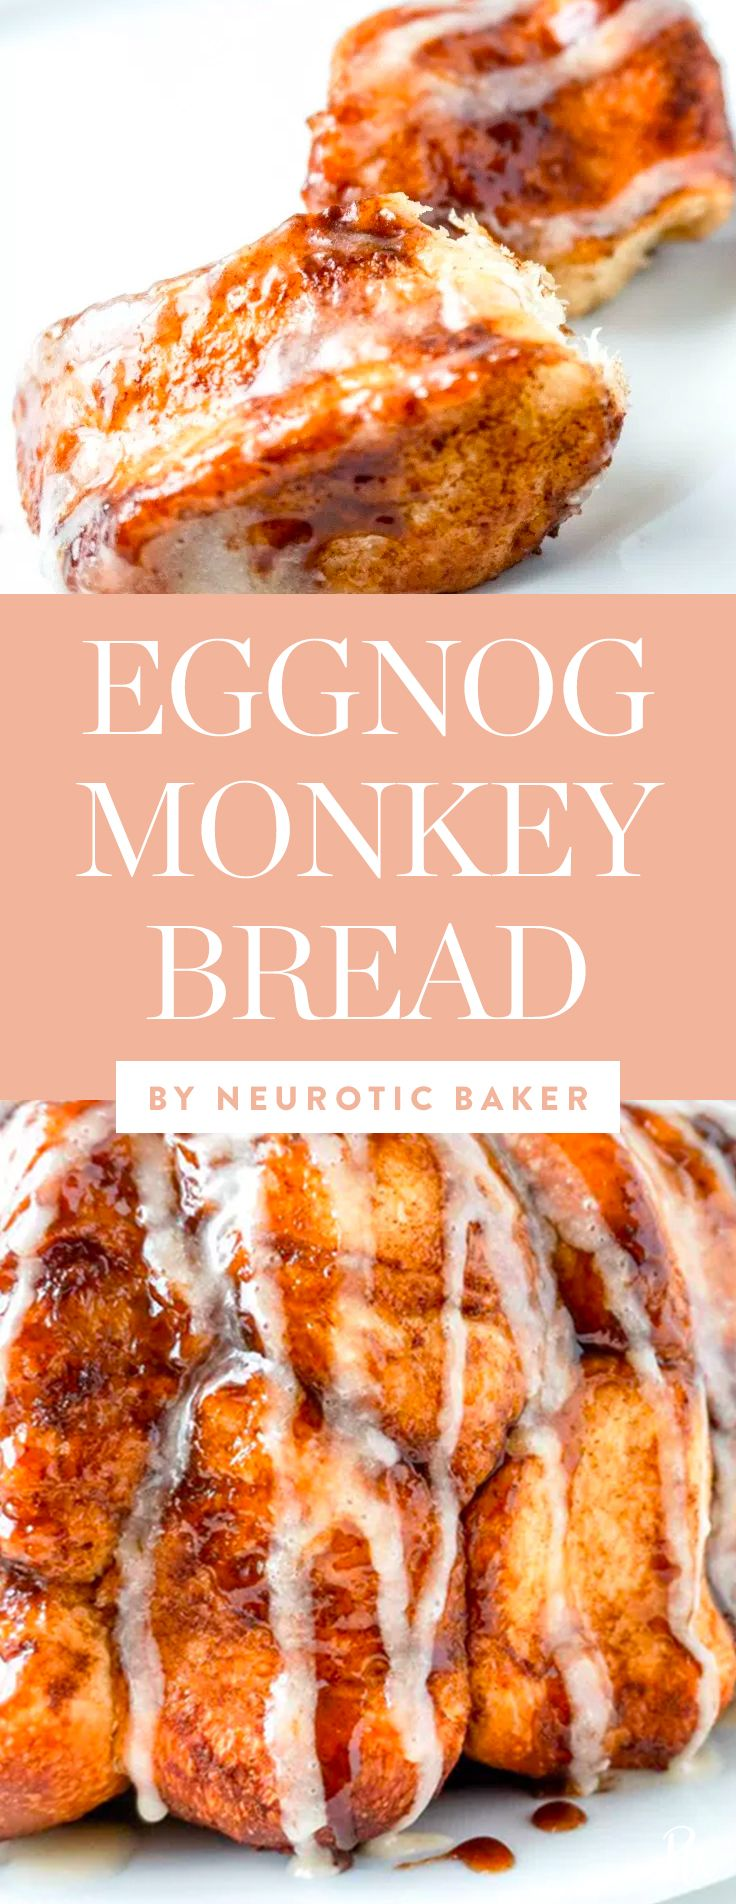 Get this amazing eggnog monkey bread recipe by neurotic baker, and more of our favorite Christmas bread recipes all your guests will love. #christmasbread #breadrecipes #bread #christmasrecipes #holidayrecipes #homemadebread #desserts #monkyebread #eggnog